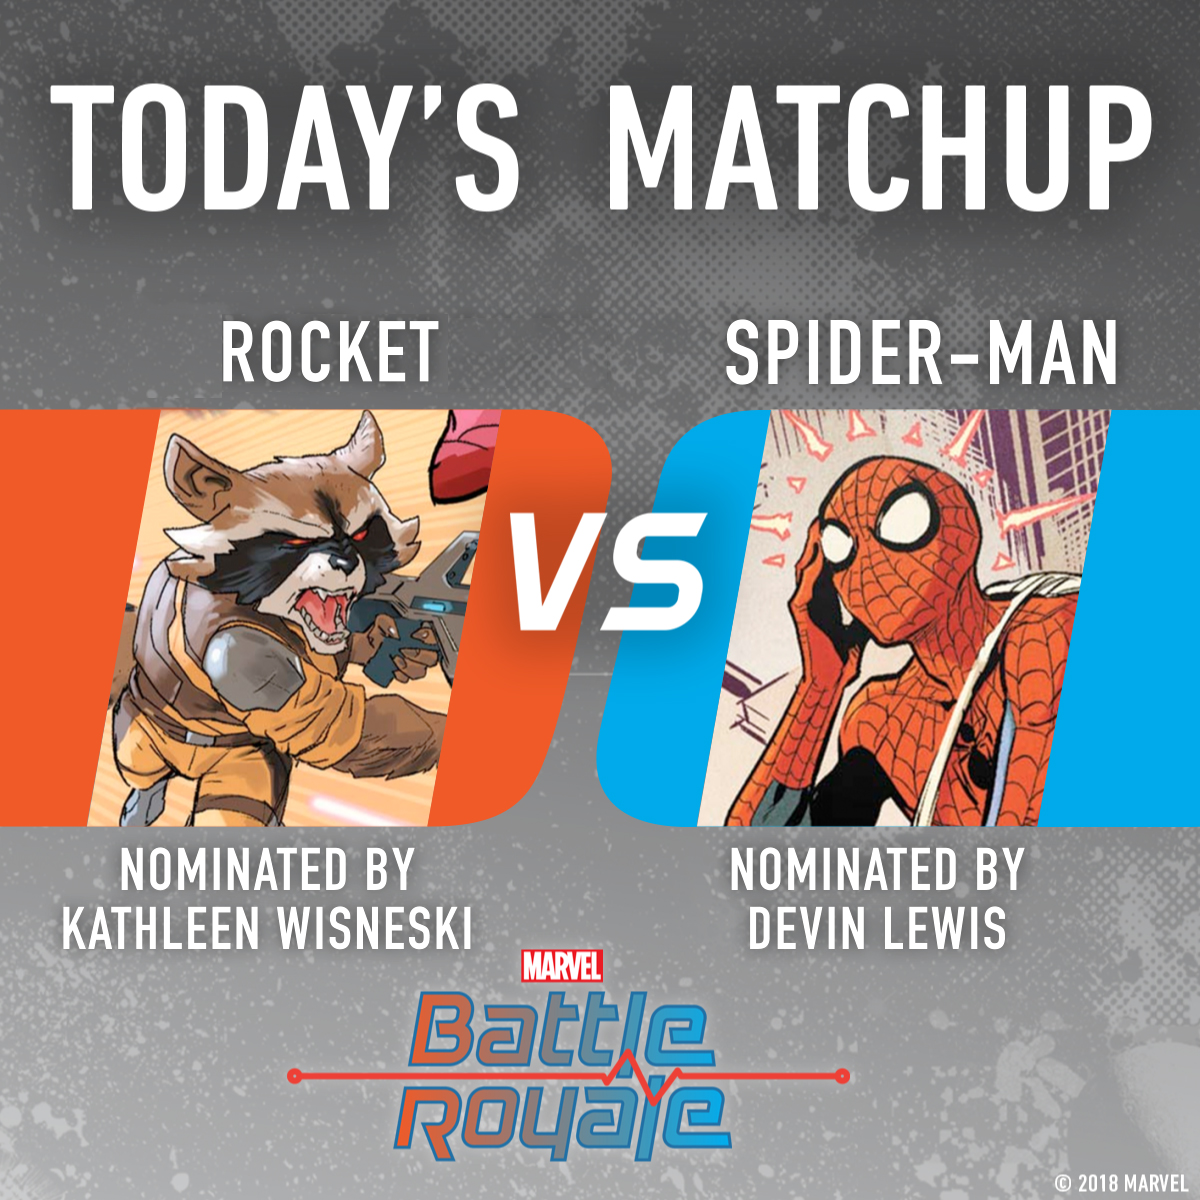 Rocket vs. Spider-Man